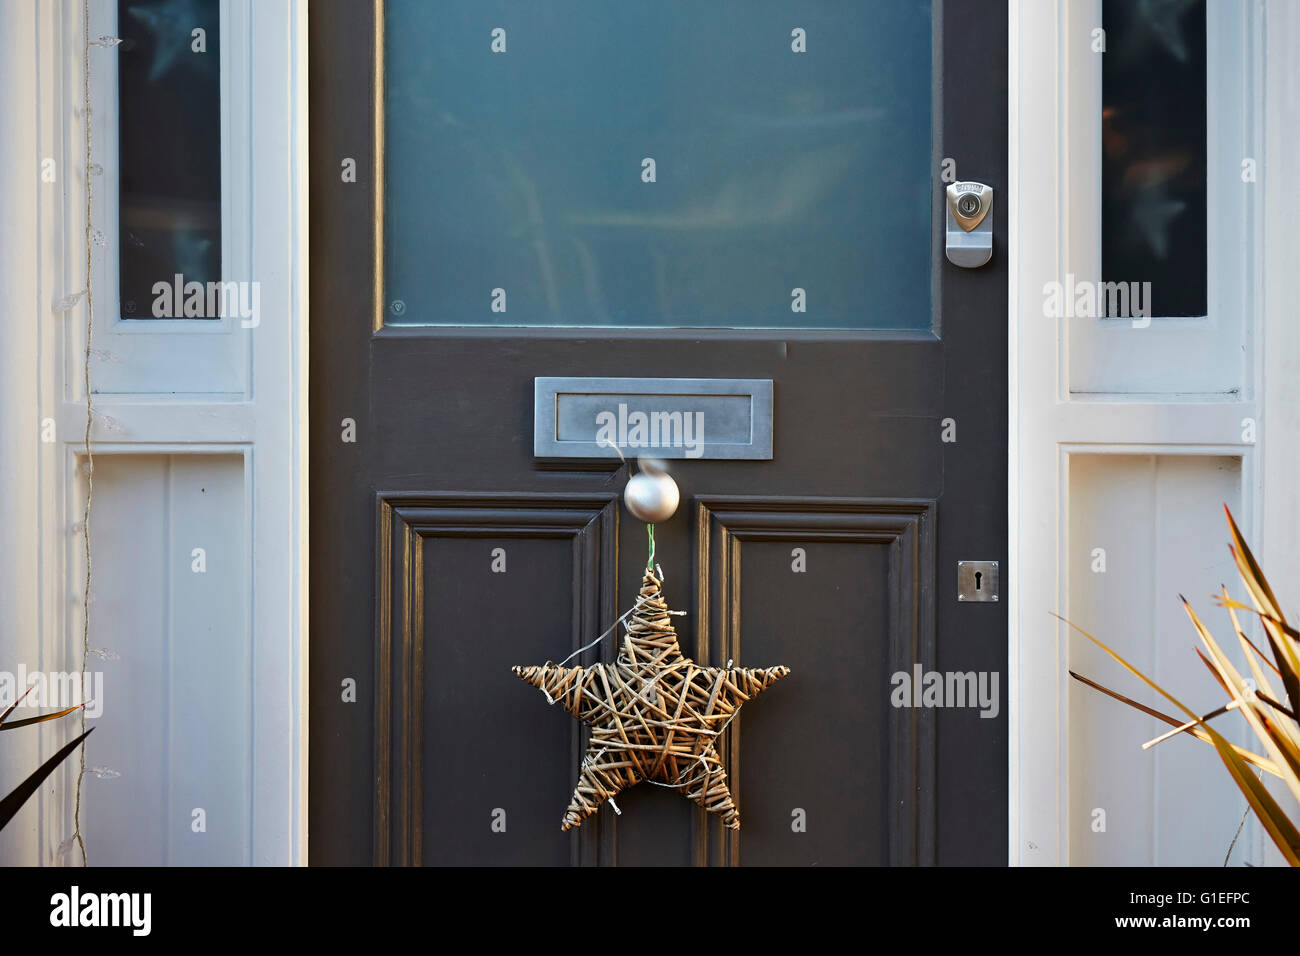 Christmas Garland on Door. Star shaped garland hanging from doorknob. - Stock Image